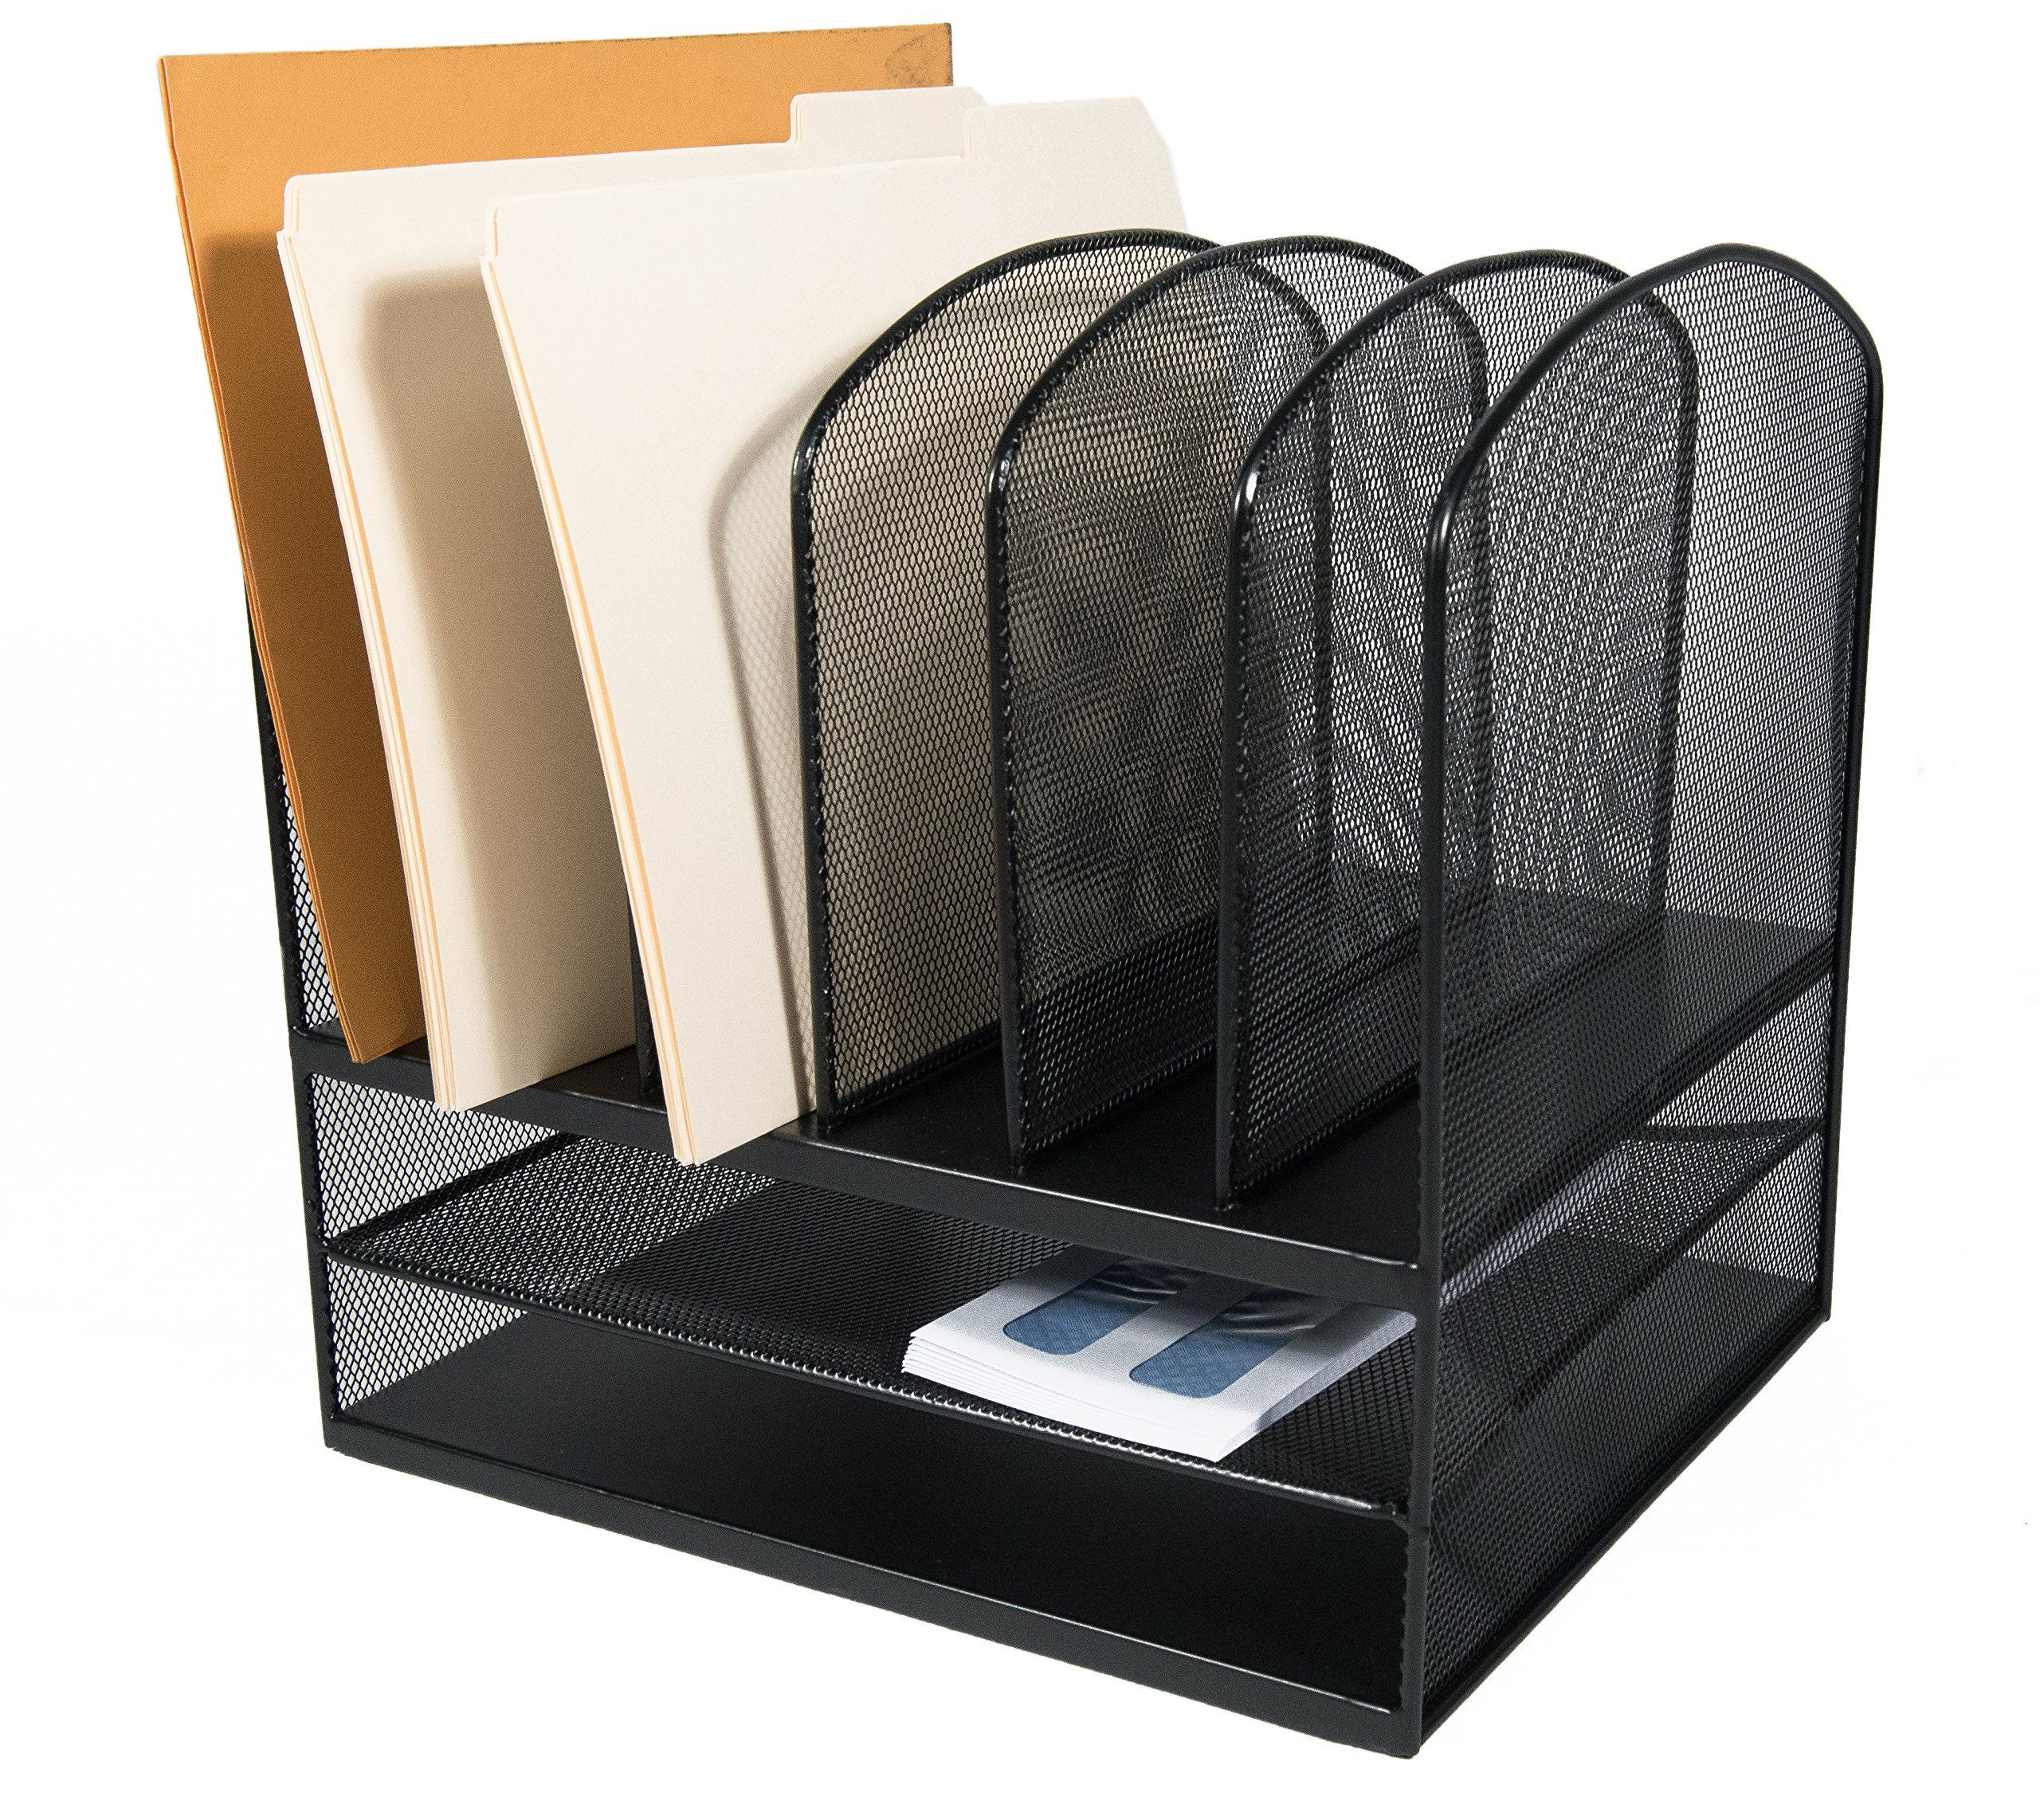 black organizer horizontal depth office home to click x desk organizers paper vertical eofficeproducts file steel supplies width mmf s desktop steelmaster height enlarge compartment